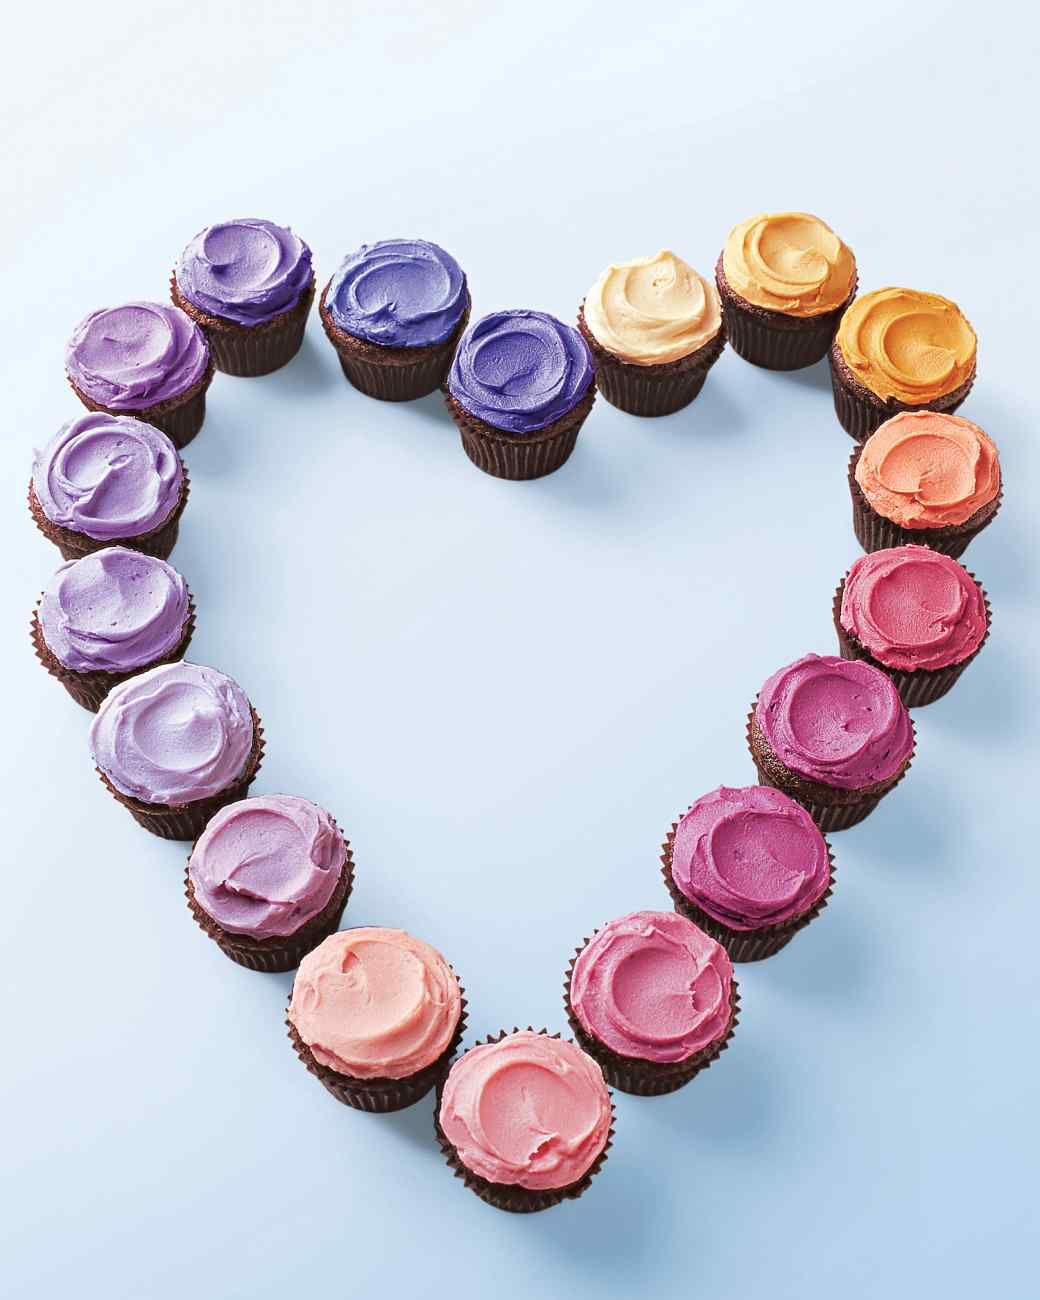 Mini Chocolate Cupcakes With Multicolored Frosting For Valentines Day